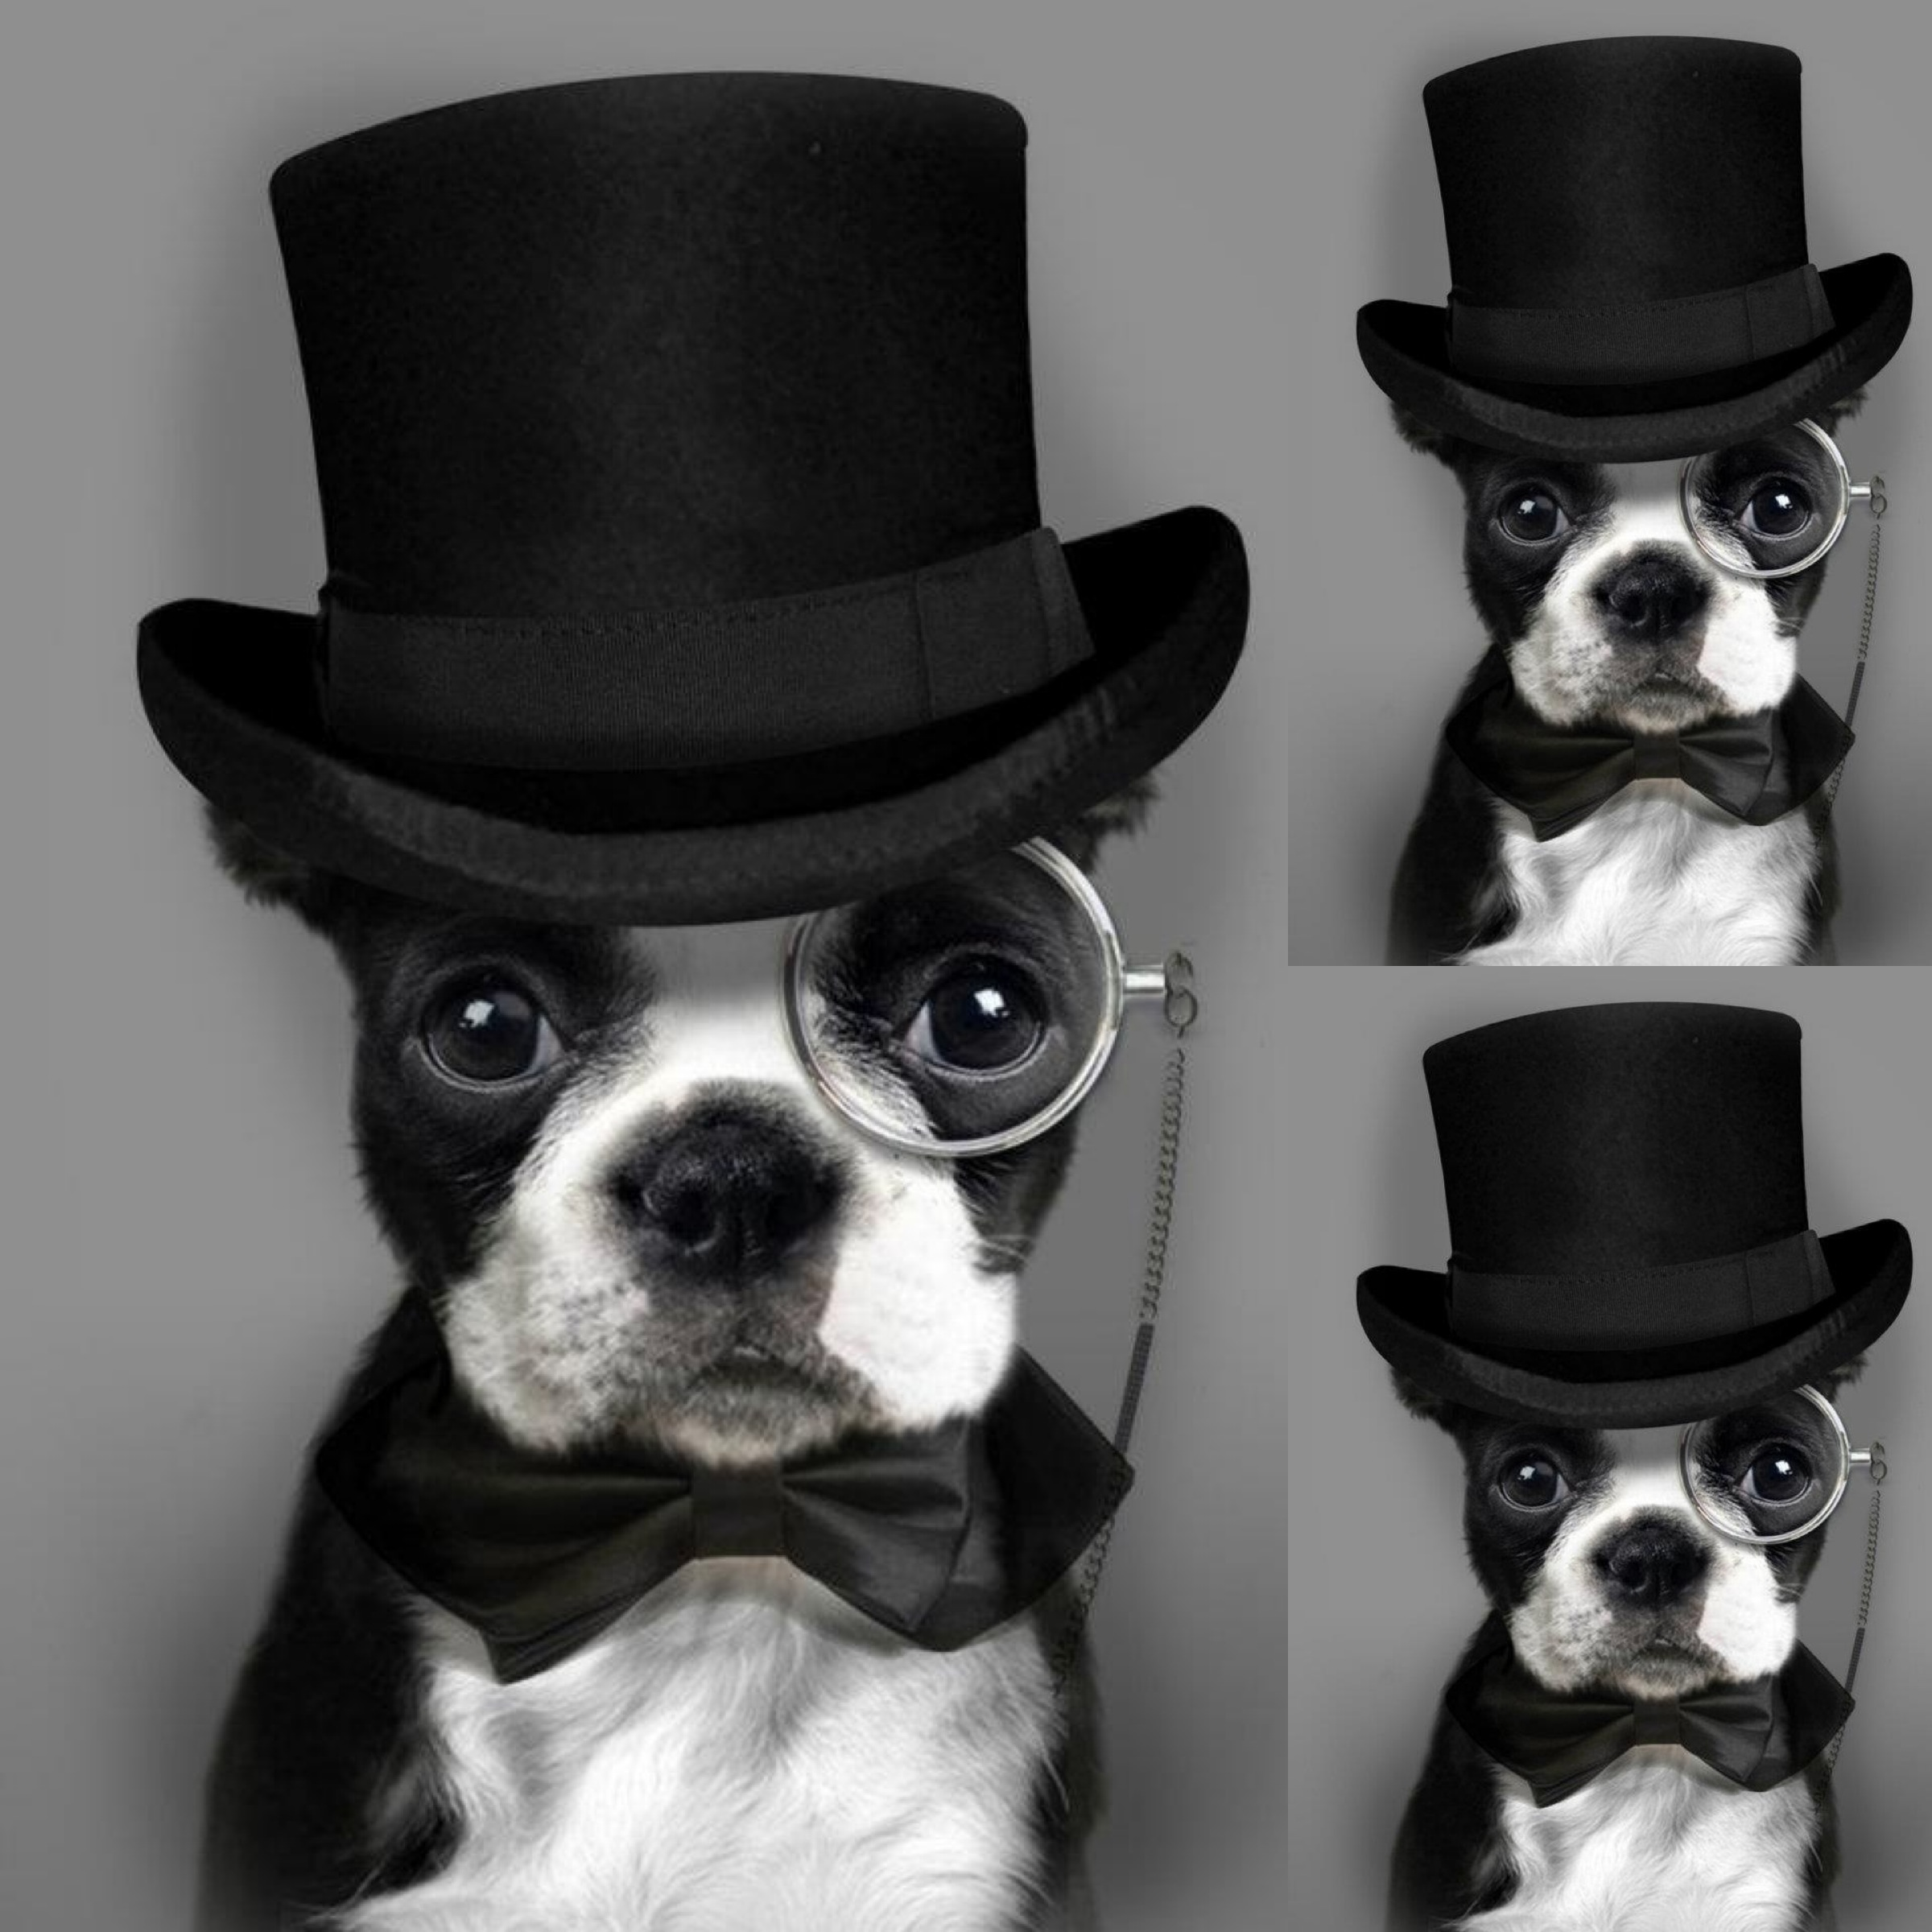 The Dog Has Style!